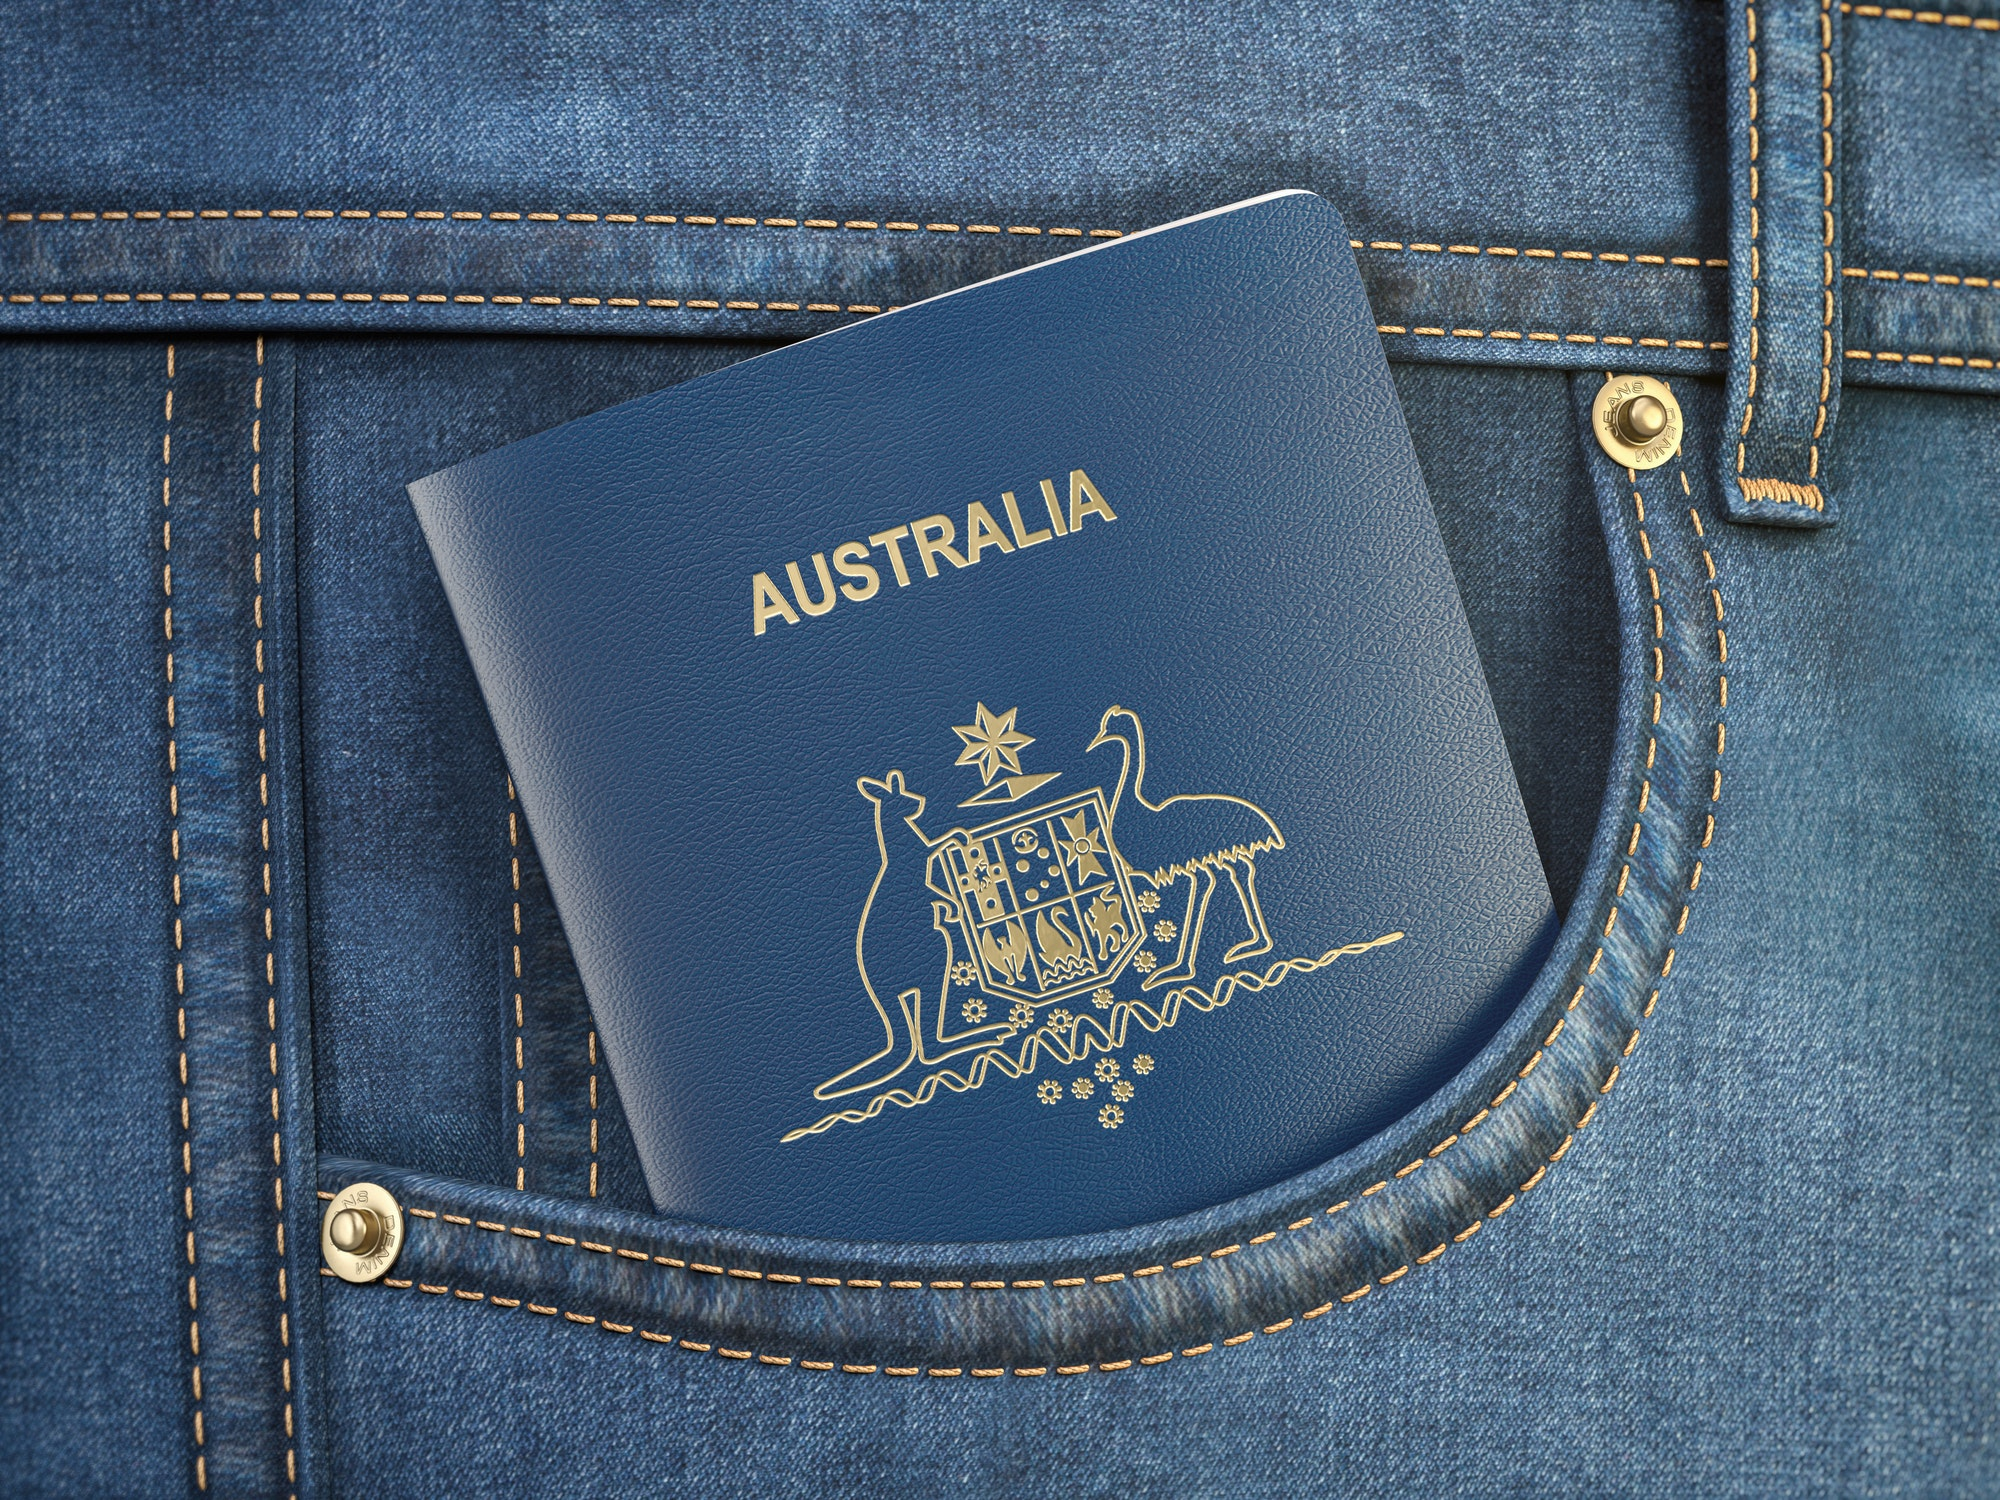 A New Citizenship Test For Australia Has Been Announced